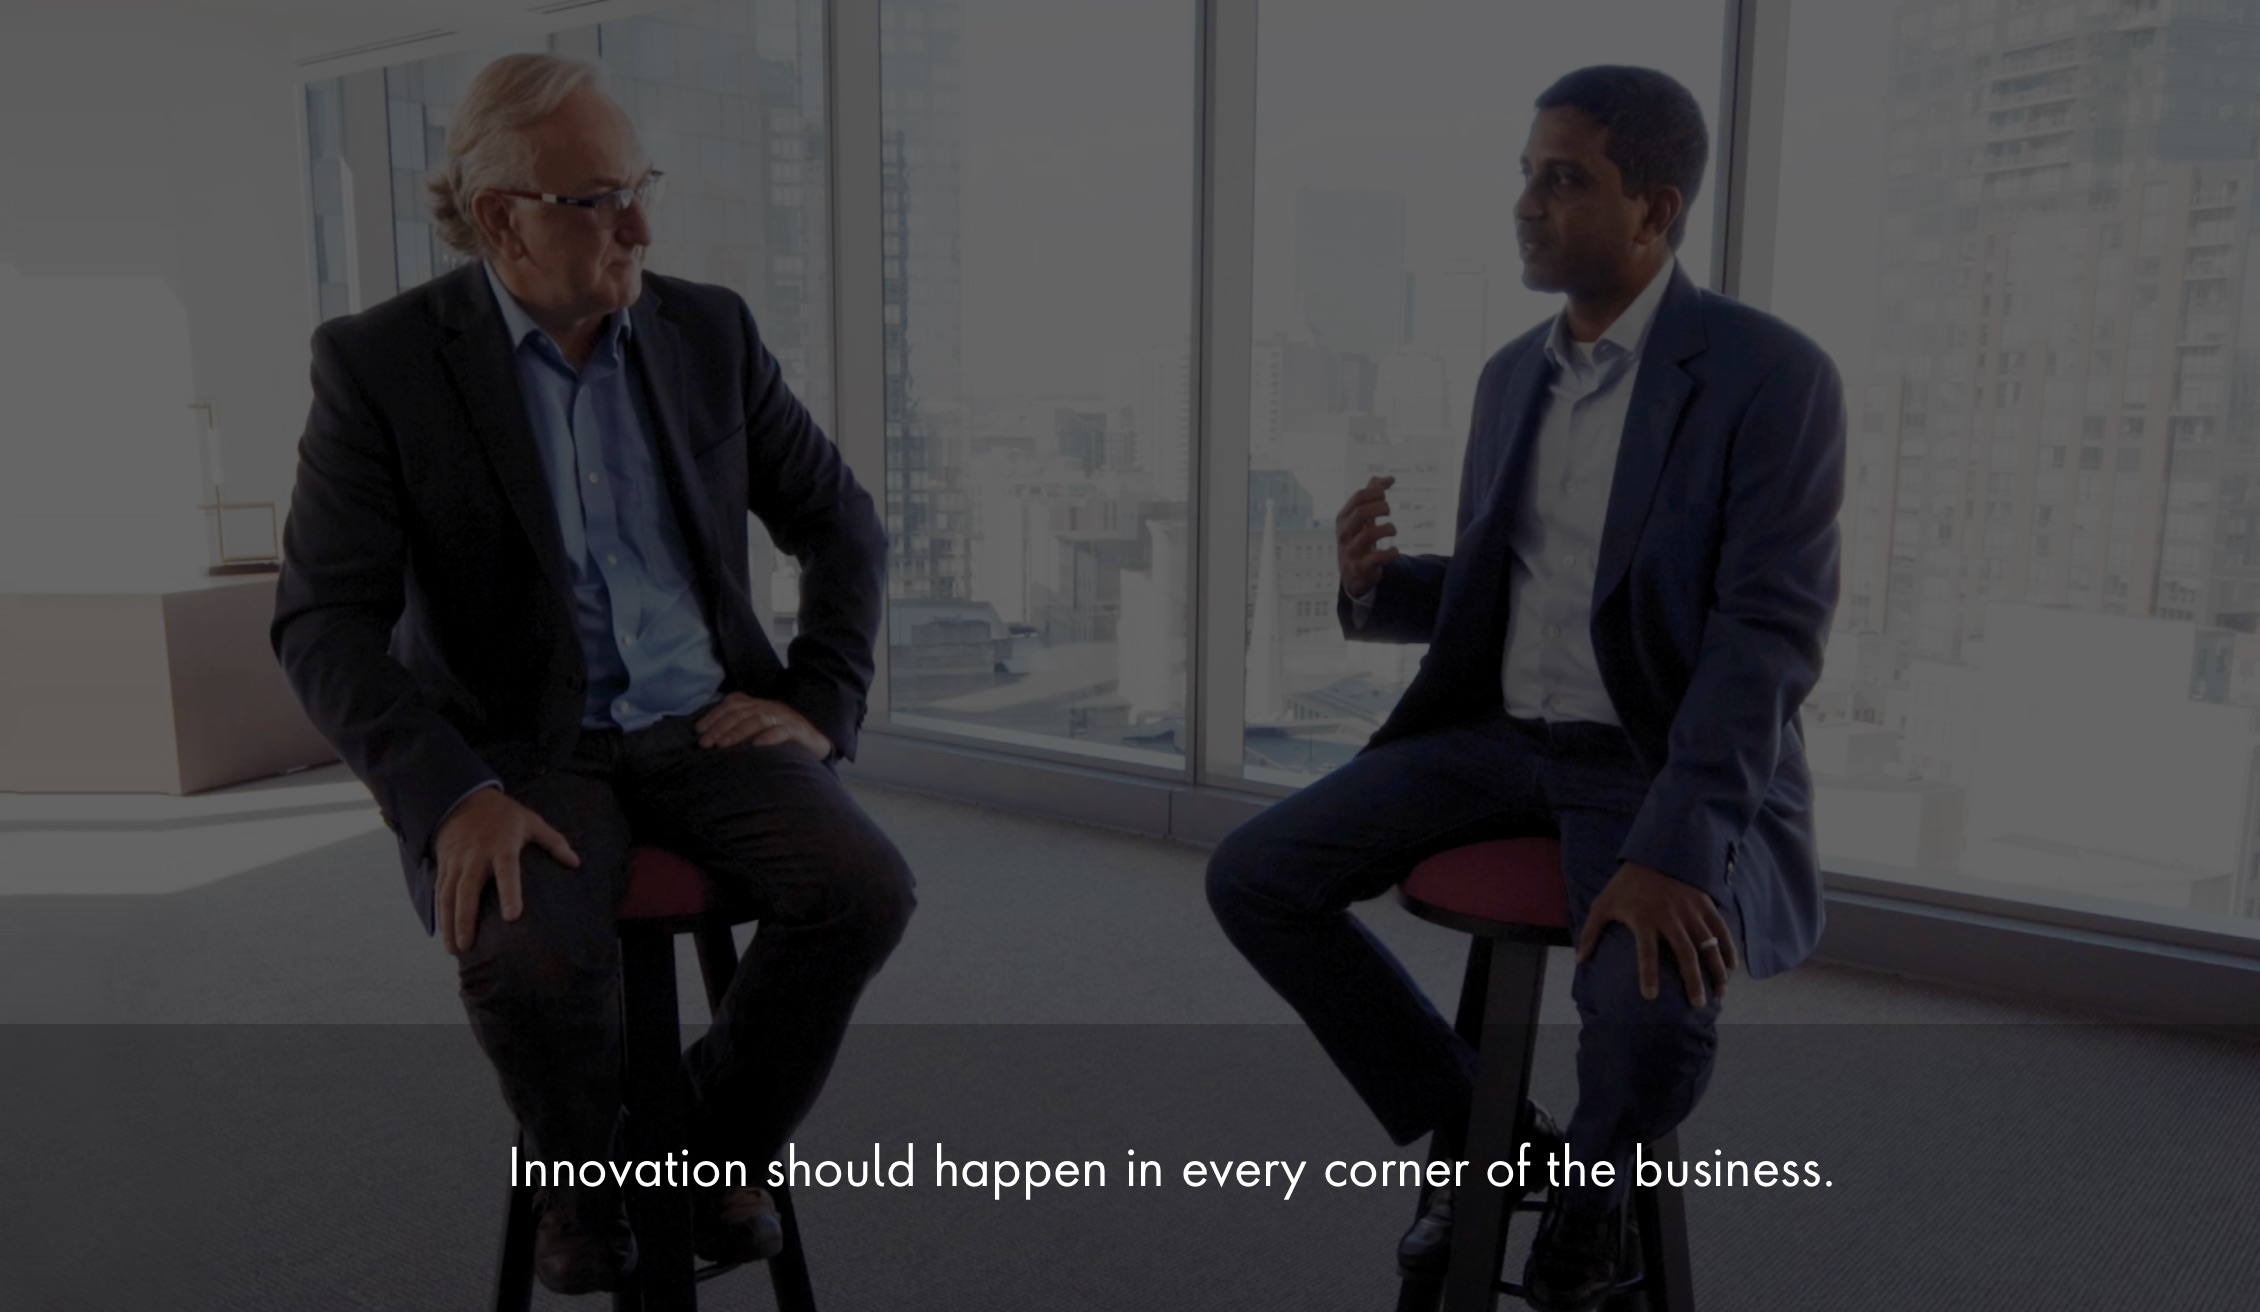 Innovation should happen in every corner of the business.